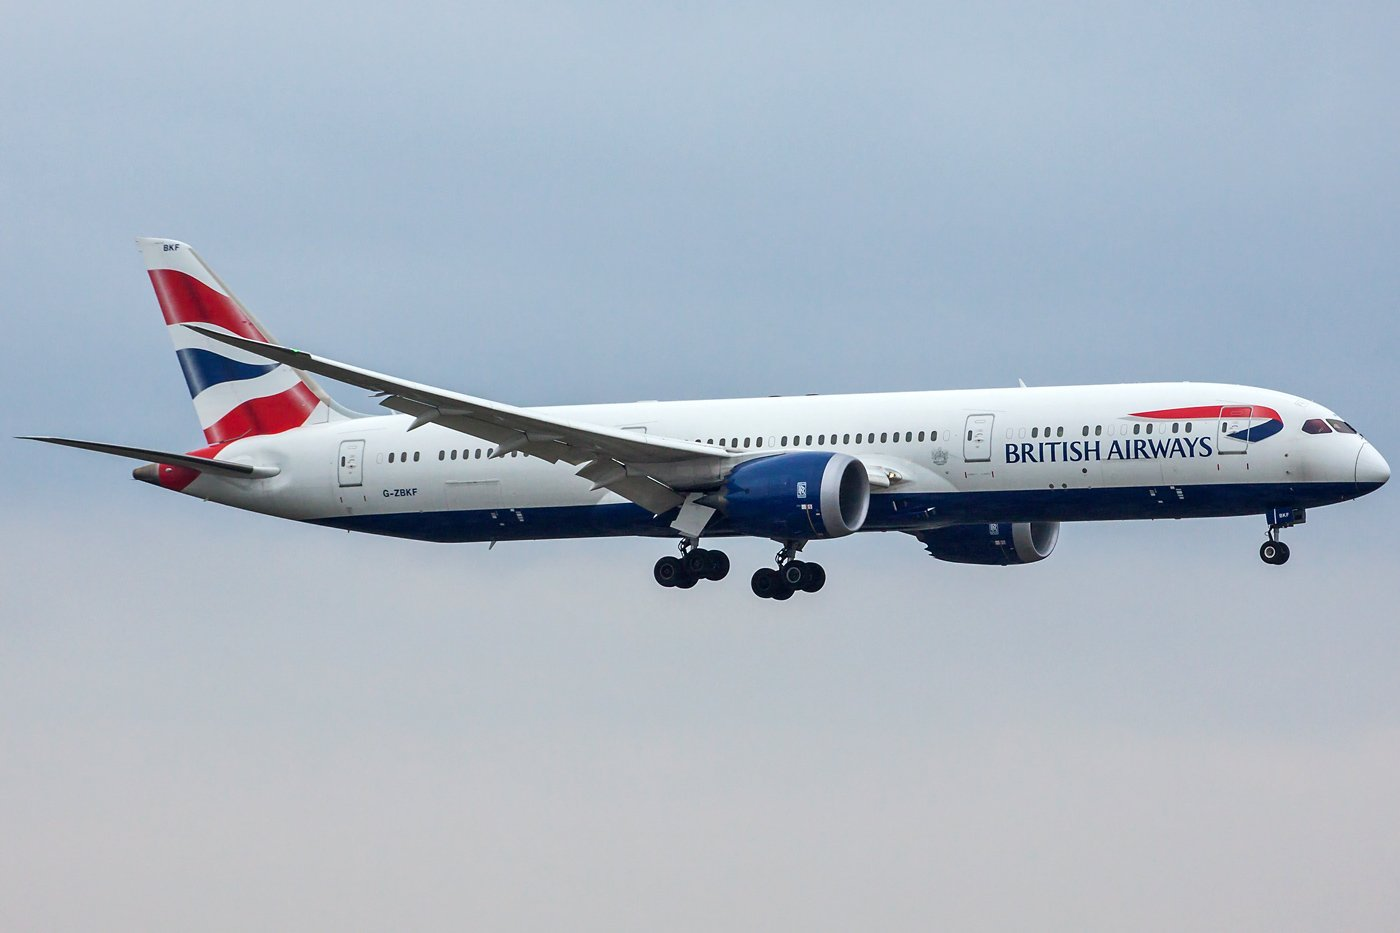 British Airways Boeing 787-9 Dreamliner G-ZBKF